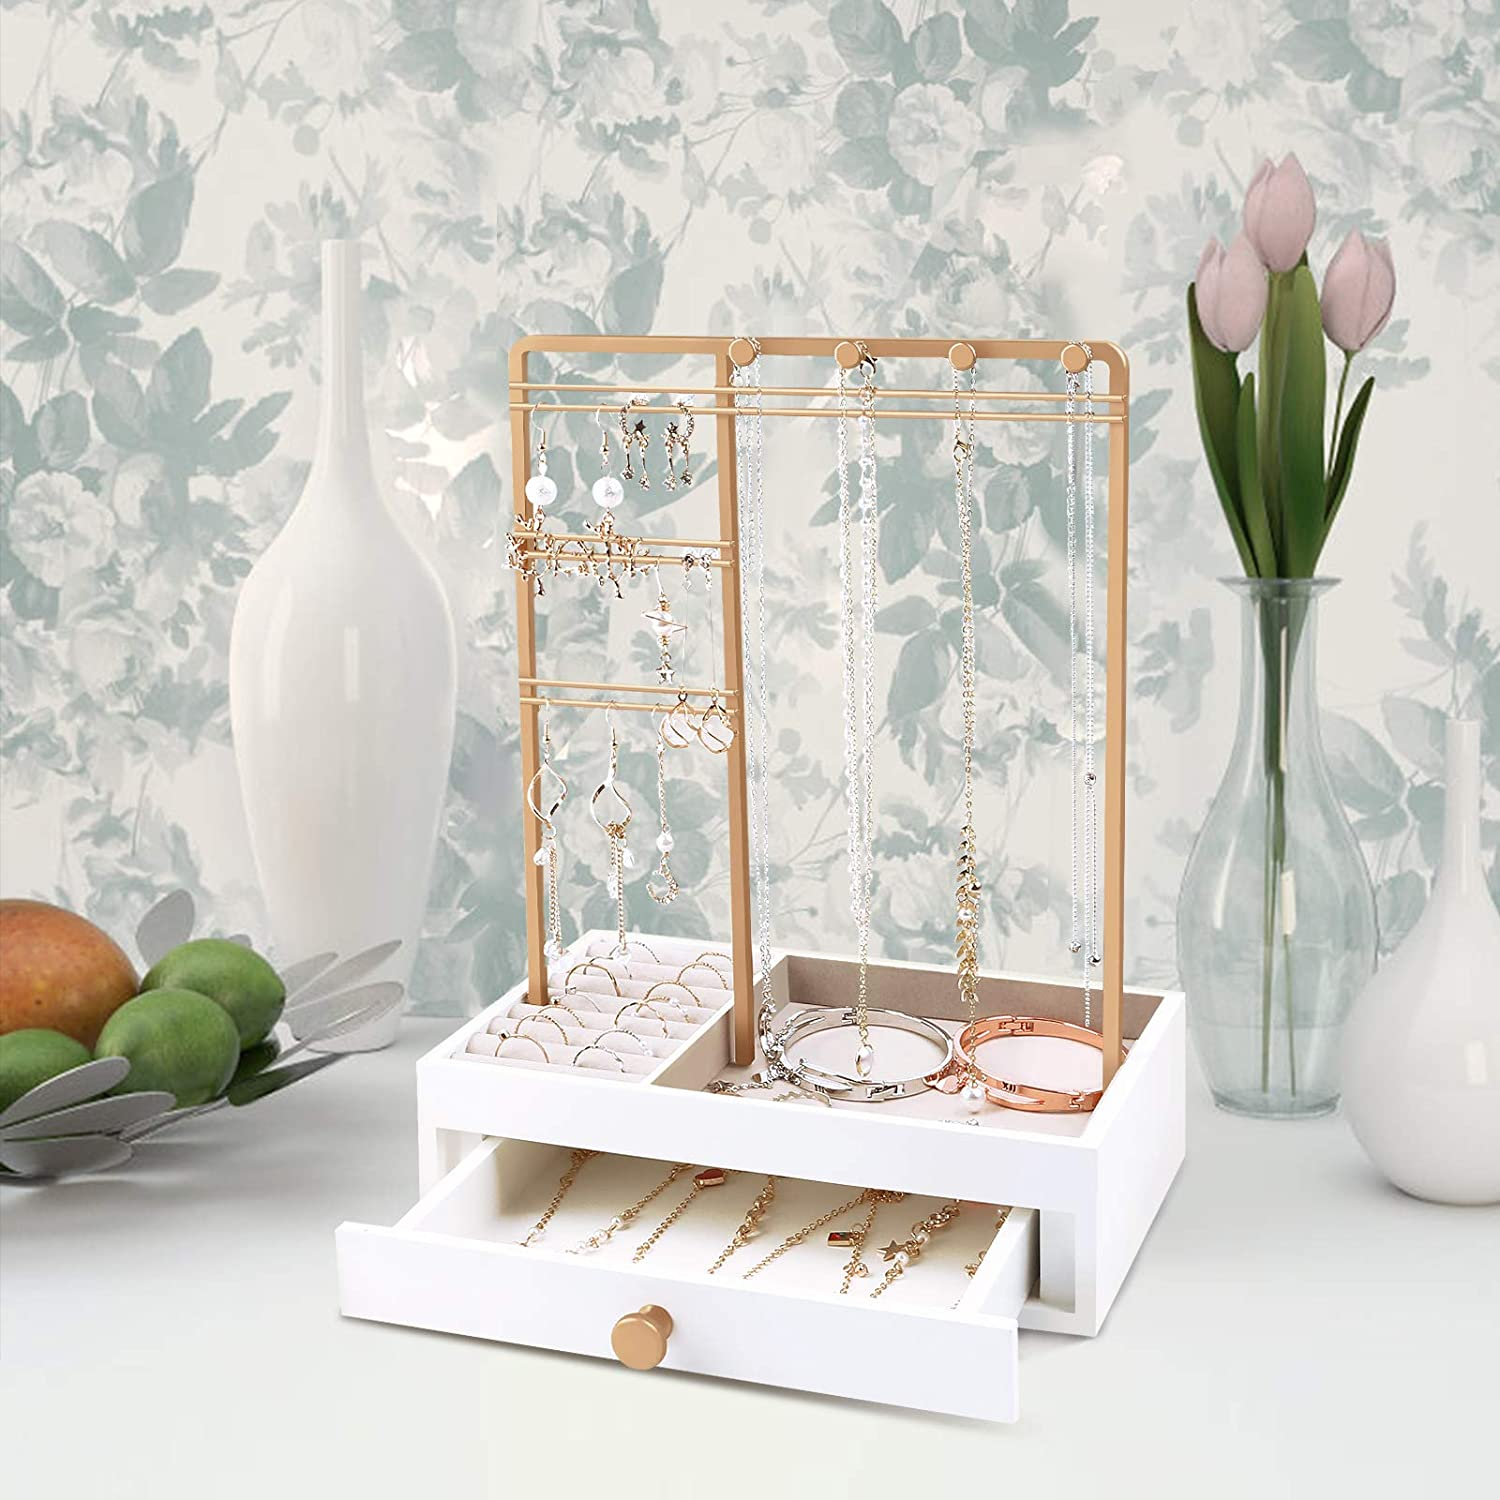 Teamkio Jewelry Stand Tree with Large White Storage Box Watches Tabletop Jewelry Organizer Display Tree for Necklace Bracelets Rings